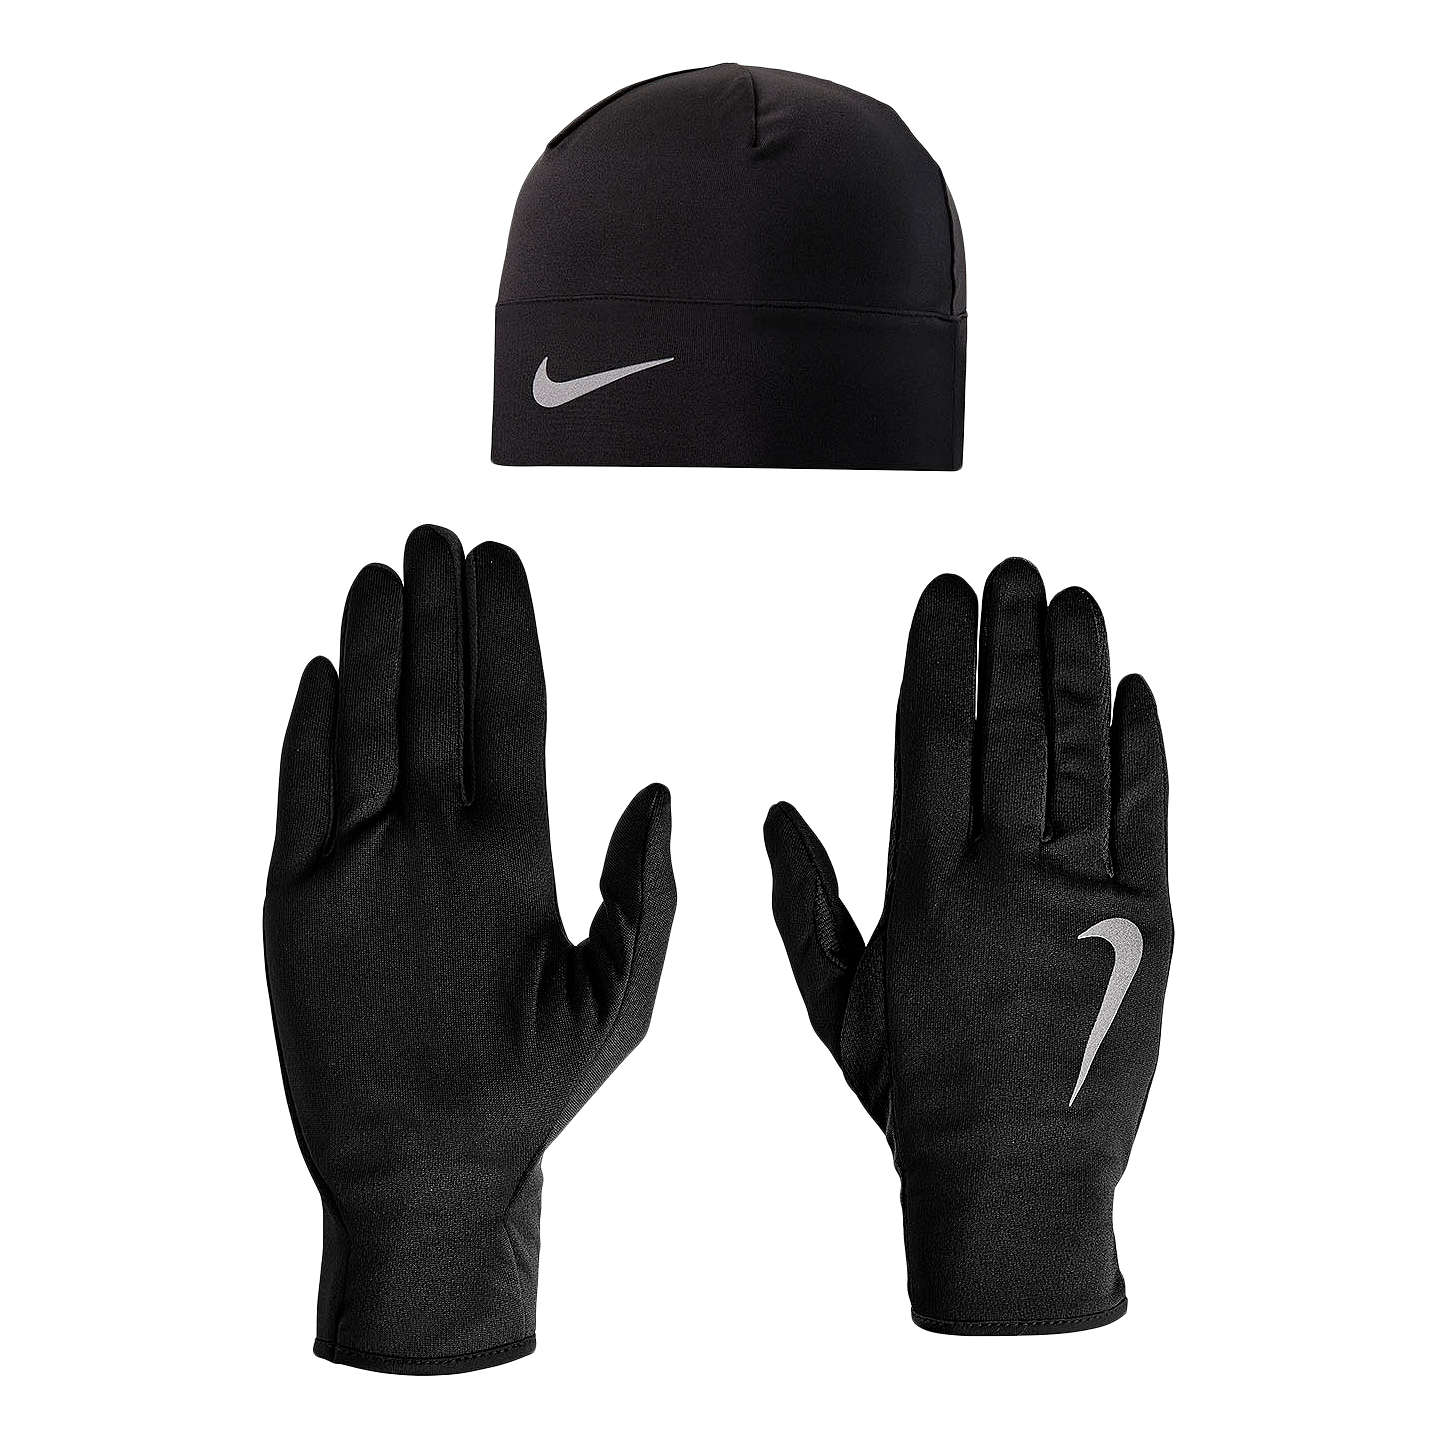 BuyNike Dri-Fit Beanie Hat and Glove Set, Black/Silver, S/M Online at johnlewis.com